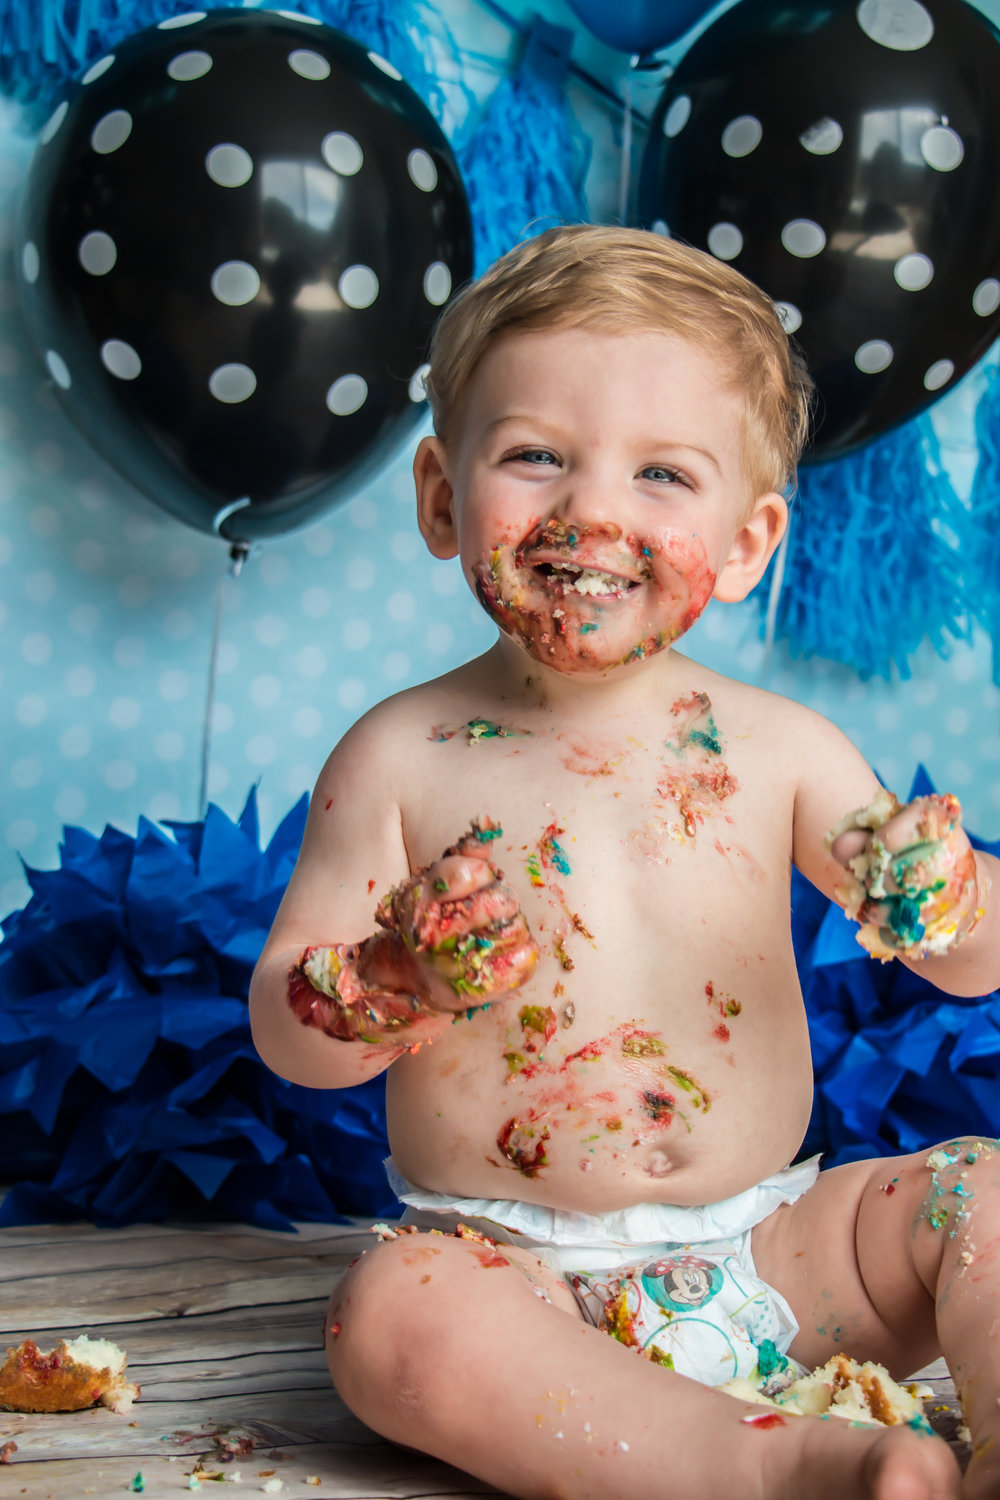 One Year Old Cake Smash Photoshoot by Jess Summers of Say Yes To Jess in Cincinnati Ohio